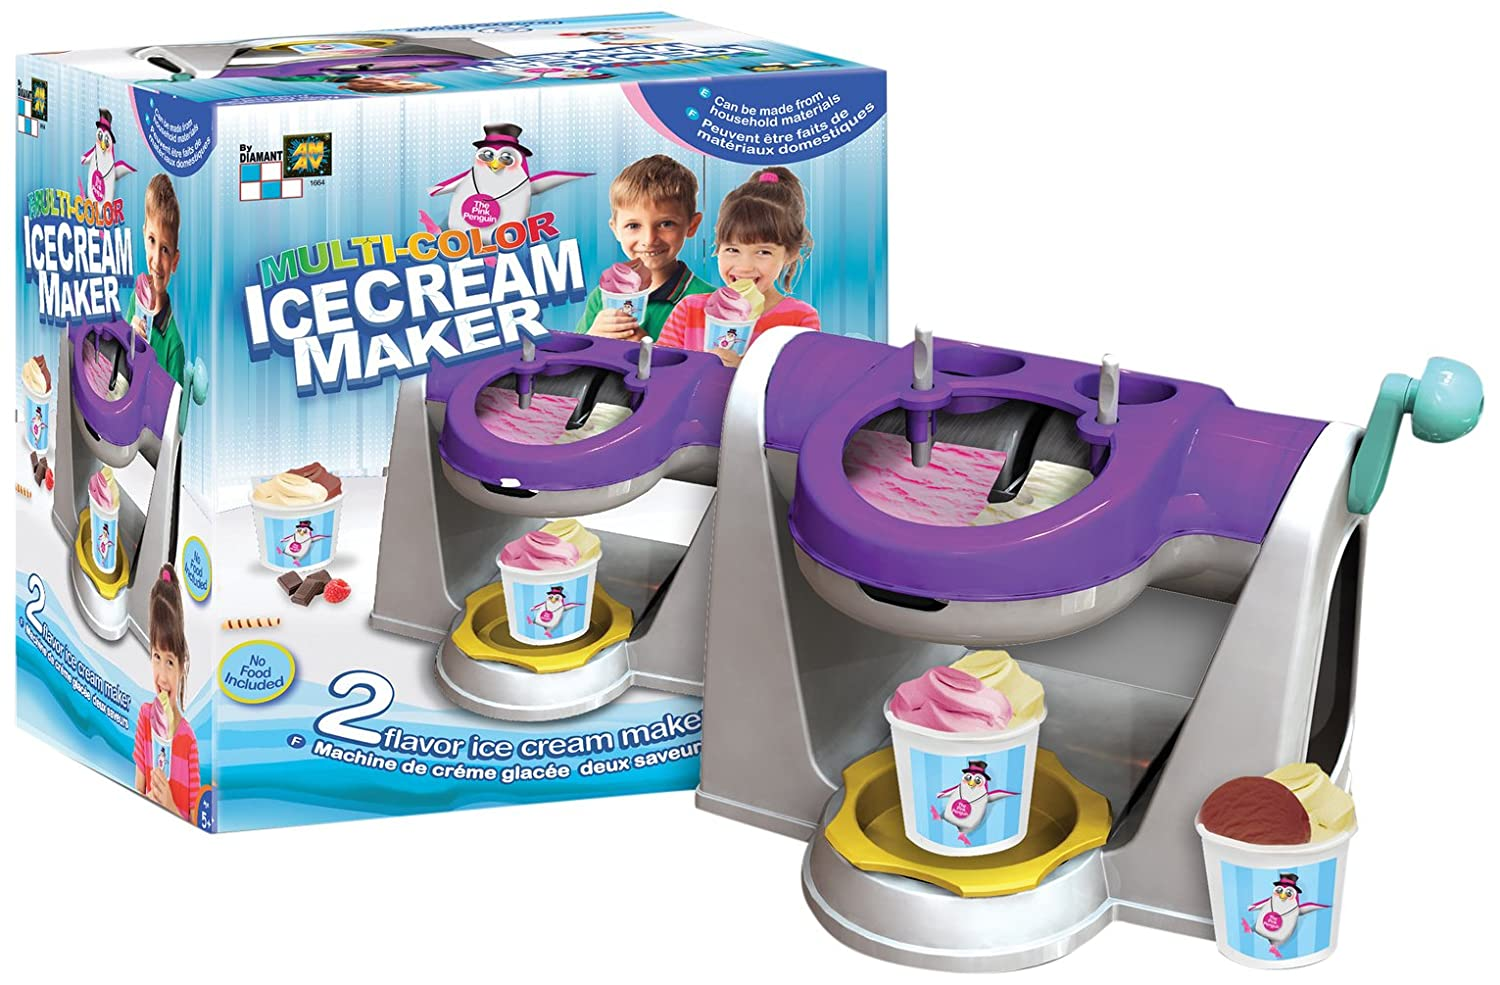 AMAV Multi-Color Ice Cream Maker Toy - DIY Make Your Own Ice Cream - Creates Two Flavors at Once AMAV Toys 1664